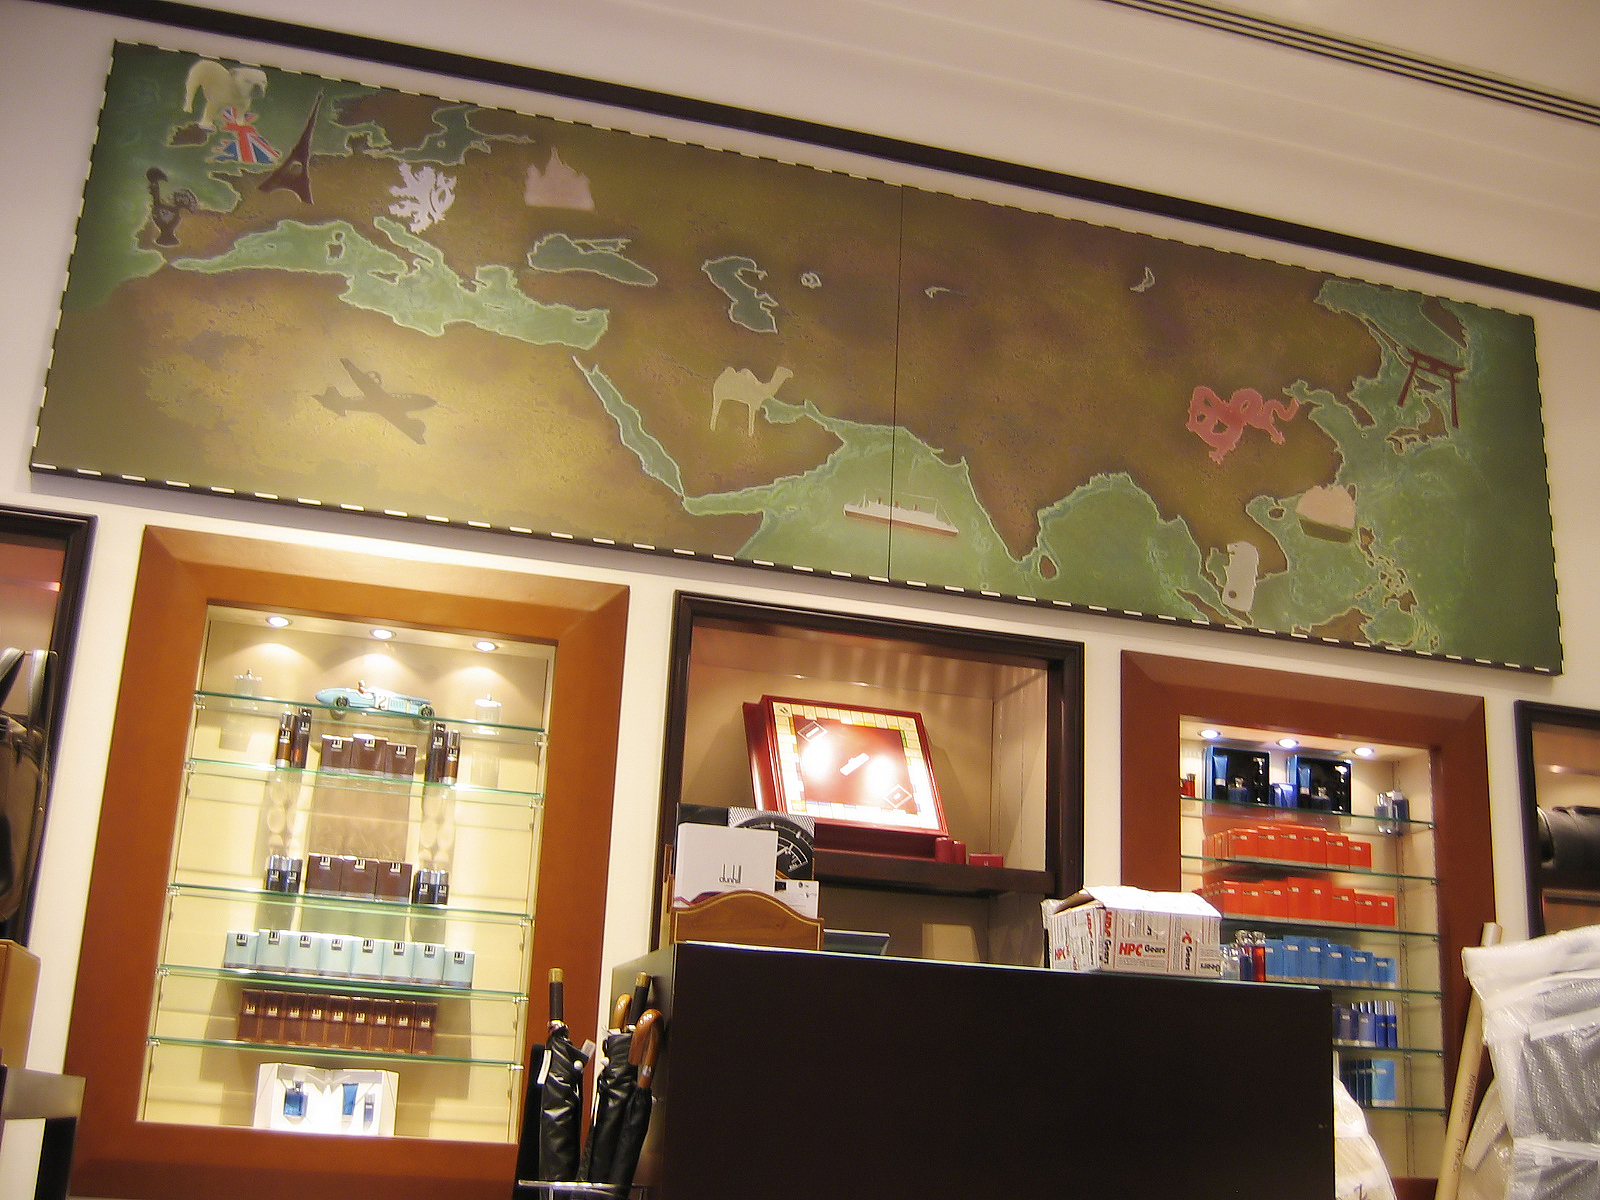 bespoke graphic mural artwork, Ulaanbaatar journey, alfred dunhill, map art, graphic design, gentleman's retailer high class shop display, retail display propmakers